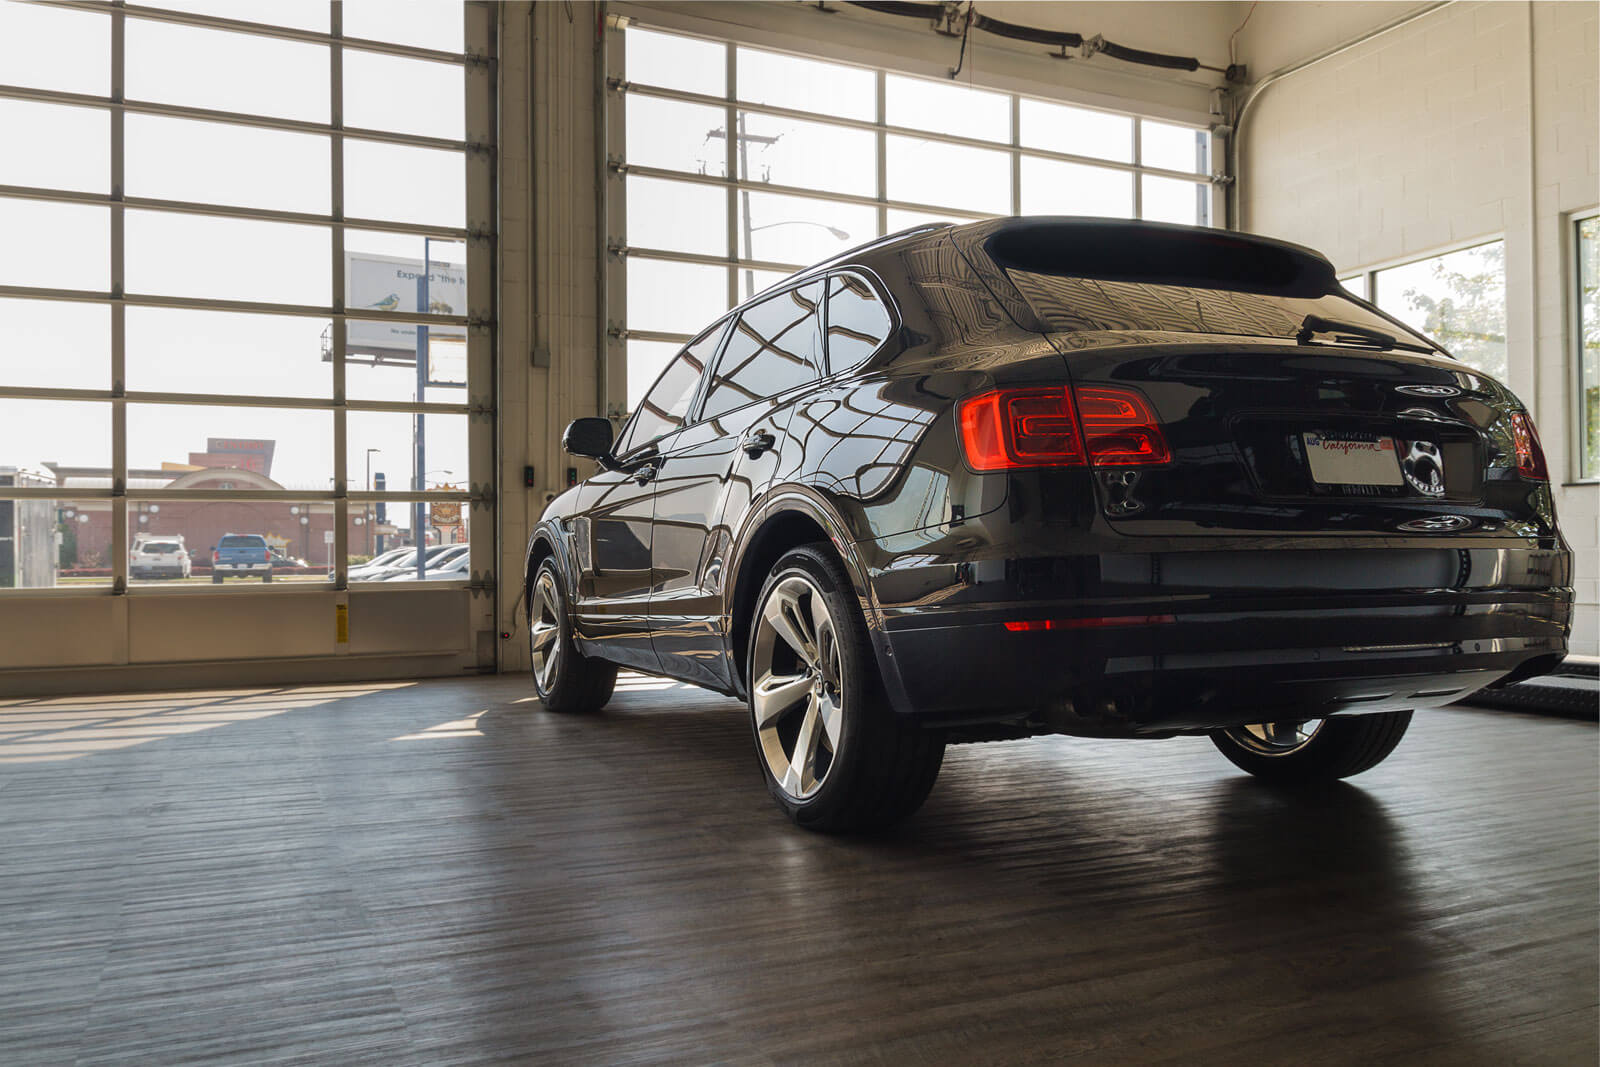 Bentley Bentayga at the Luxe Auto Spa, floored with Smoked Oak.